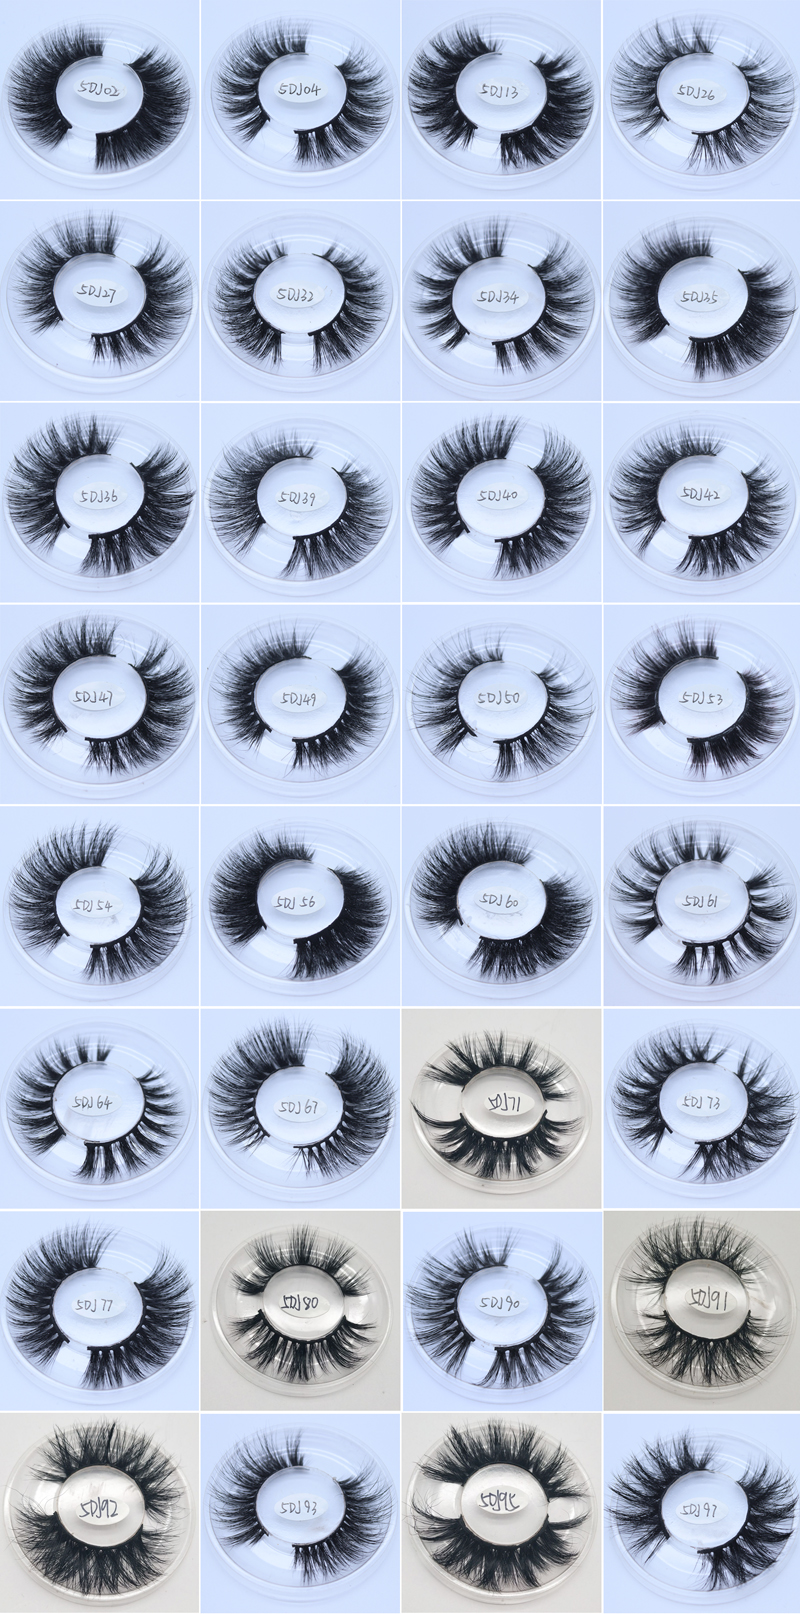 2019 best selling soft long 25mm 3d mink eyelashes private label